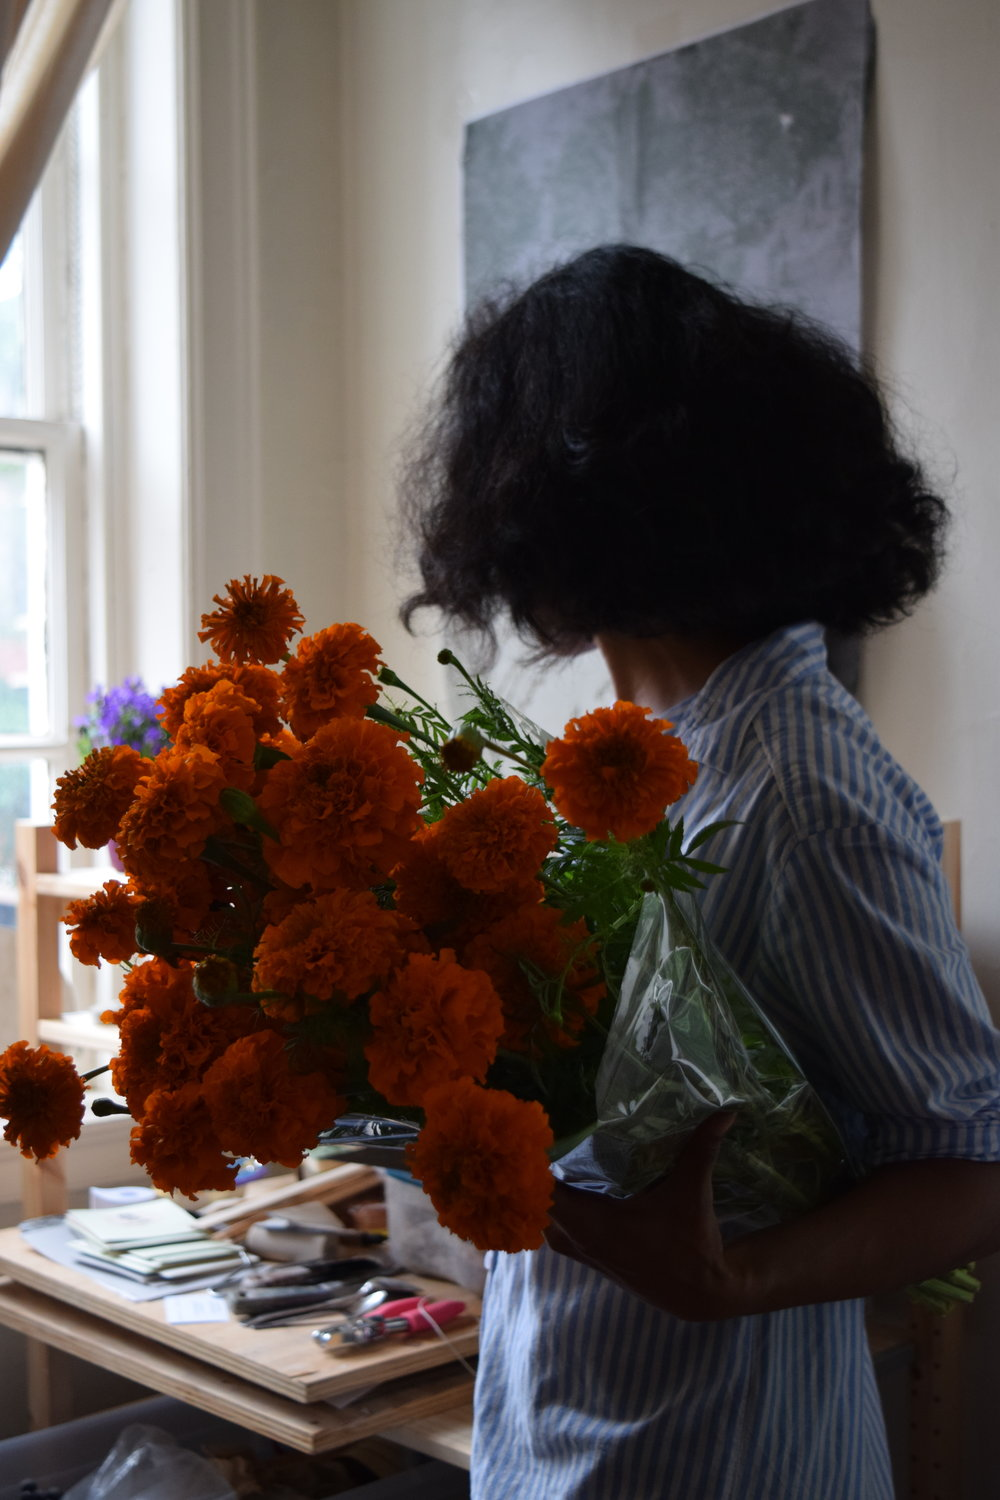 - Just before doing the Dorene Collection photoshoot, I picked up some marigolds from the farmer's market in Rittenhouse Square. I didn't necessary think that they were going to be used for anything but my own need to always have fresh cut flowers in my place.  I'm glad I did. These little beauties ended up being the perfect non-prop prop. They popped up in most of the picture Amy took. So let's follow the marigold-round.